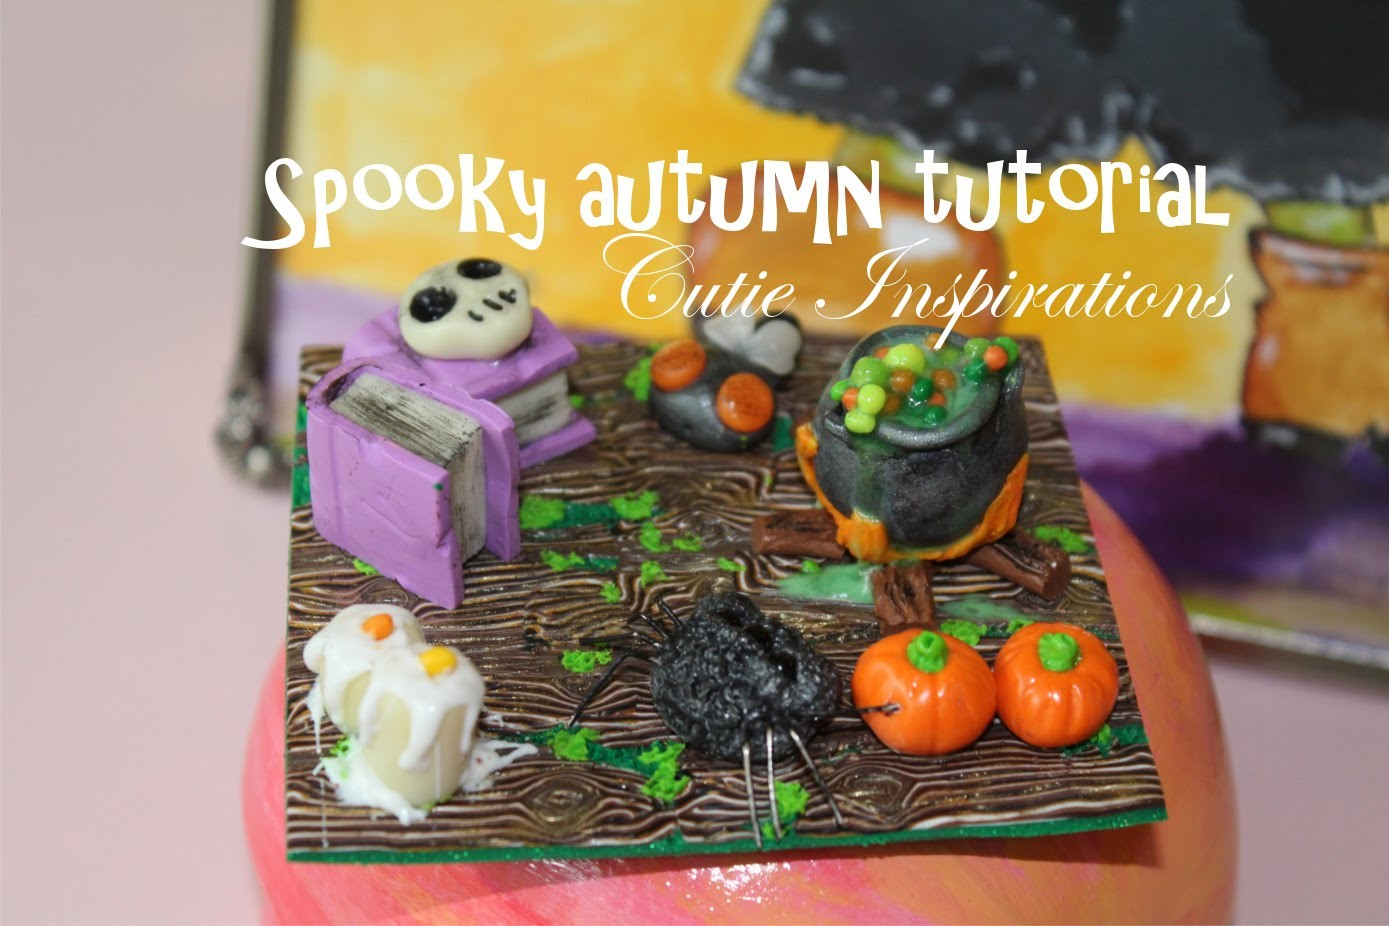 Spooky autumn tutorial